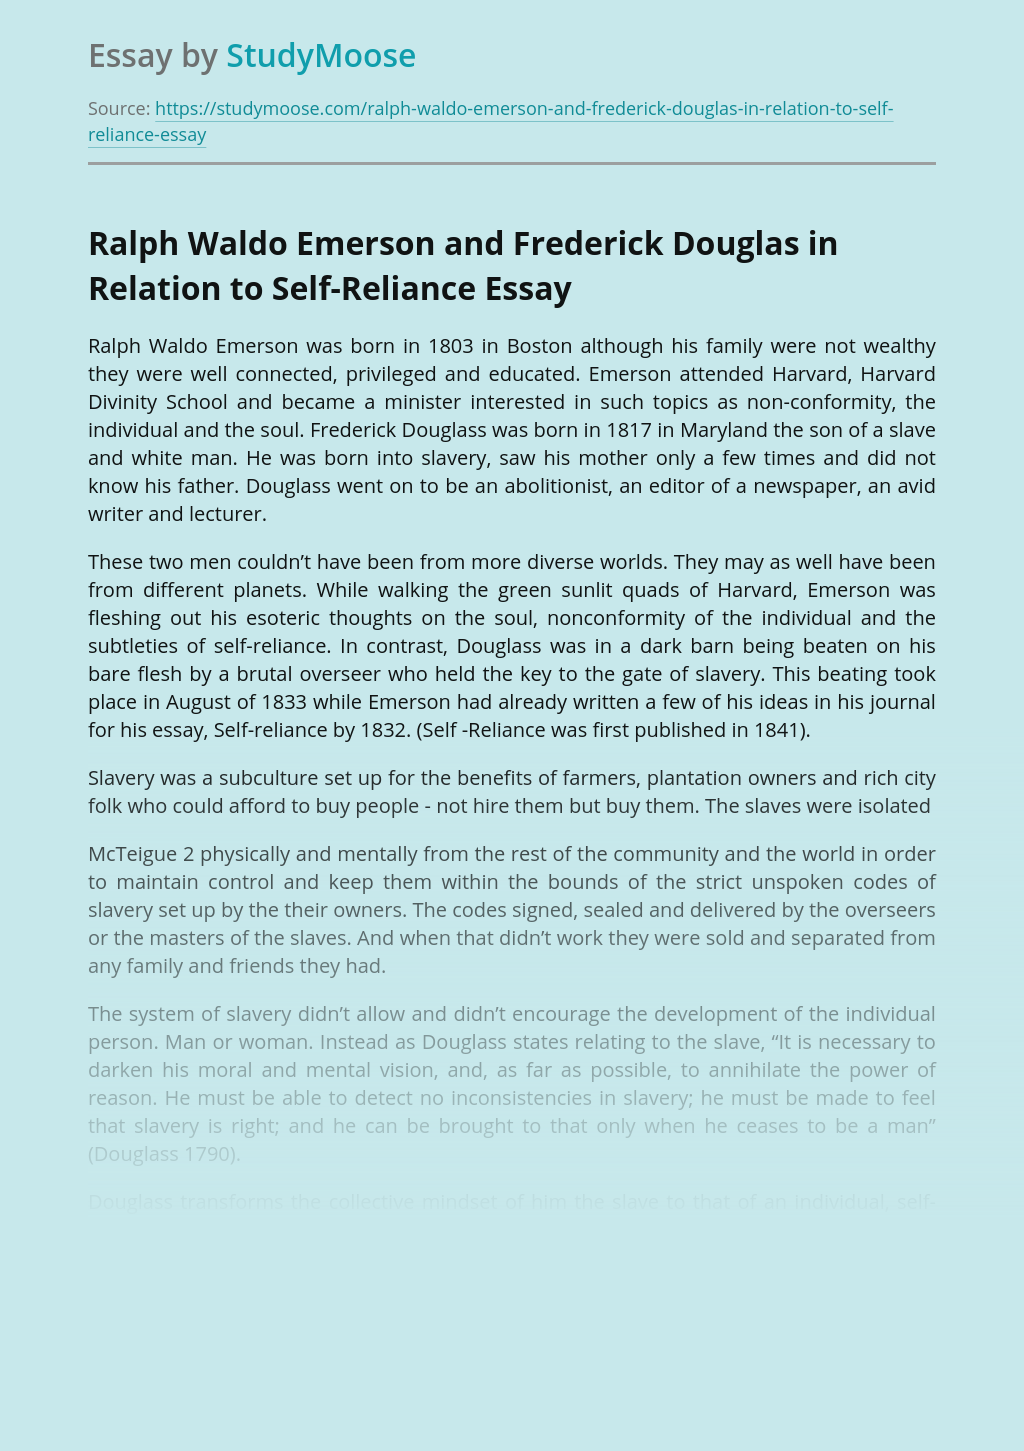 Ralph Waldo Emerson and Frederick Douglas in Relation to Self-Reliance